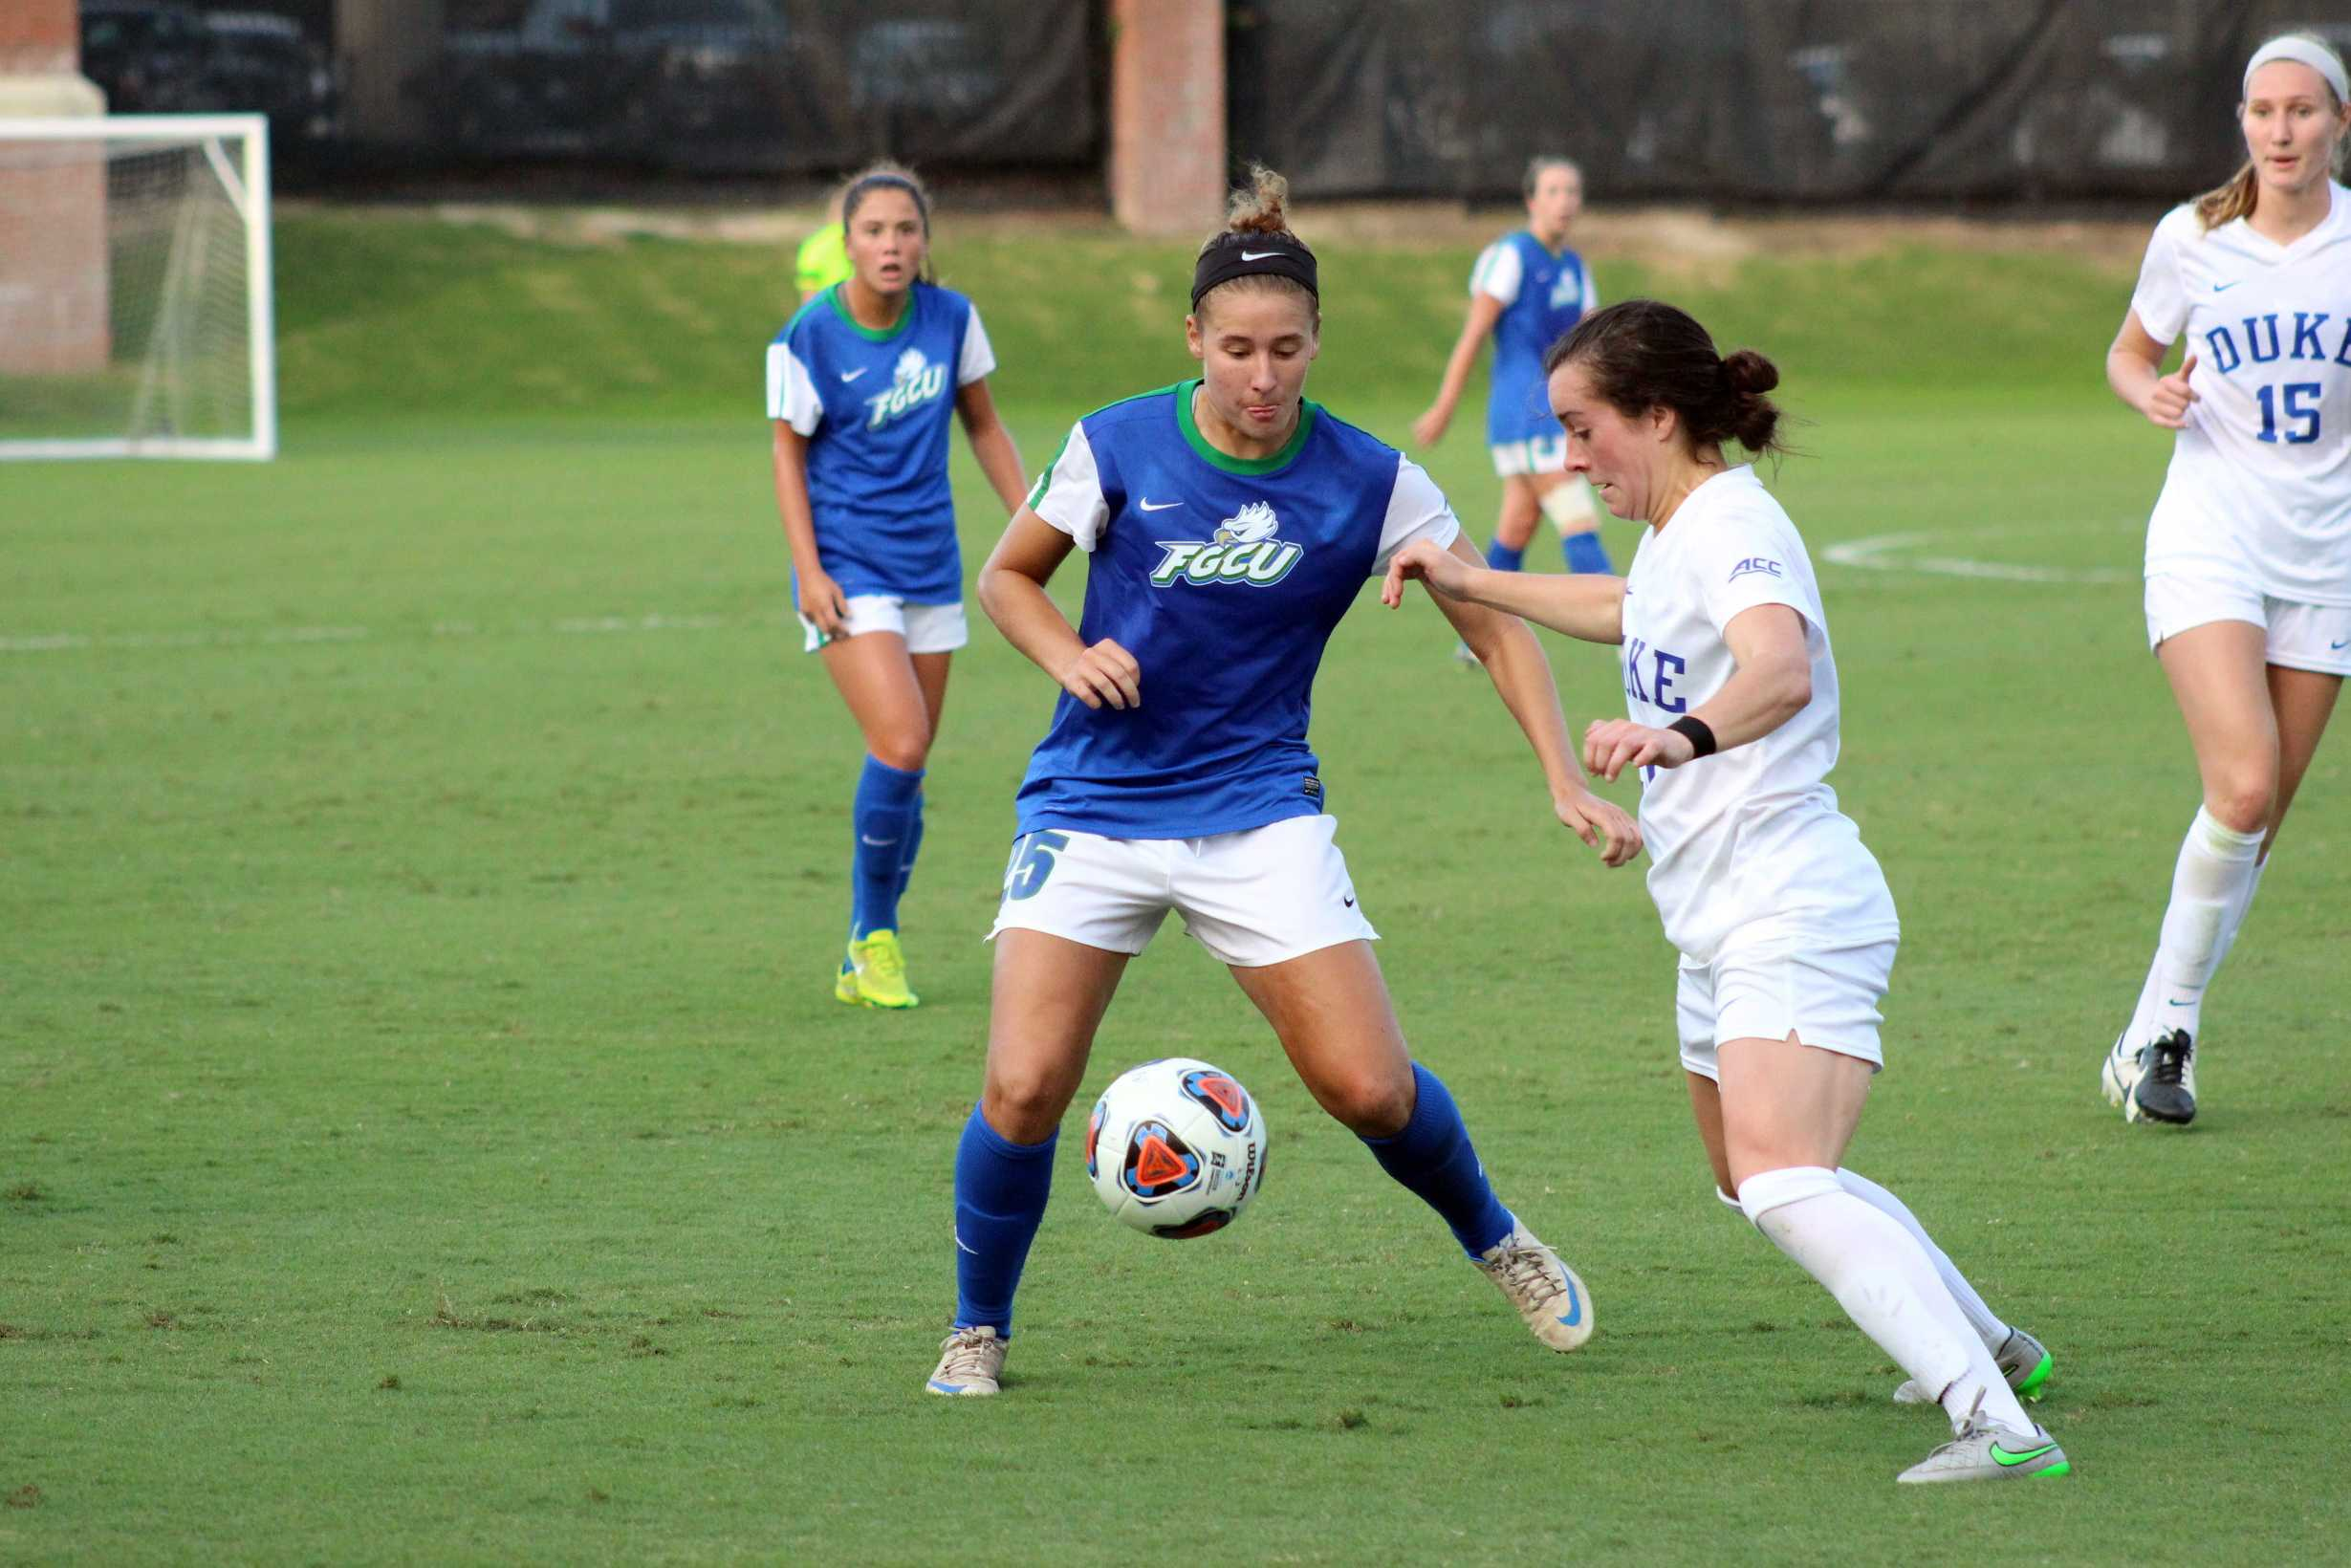 Tabby Tindell named to TopDrawerSoccer.com's list of top 10 forwards